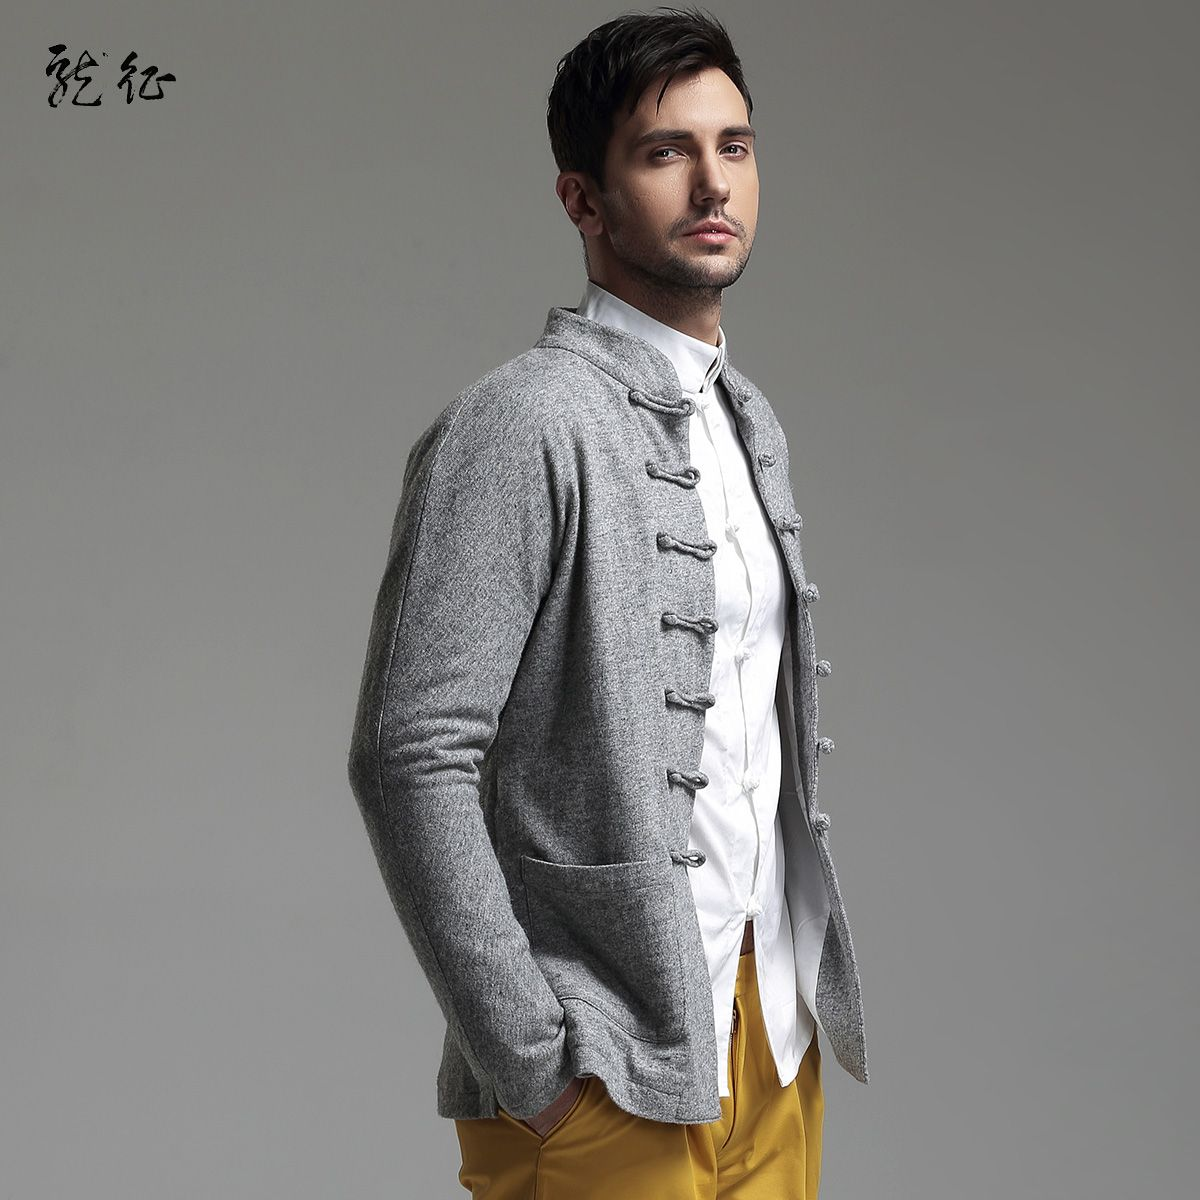 862c7ddcd55 Woolen Cloth Chinese Tang Jacket for Men - Gray - Chinese Jackets - Men